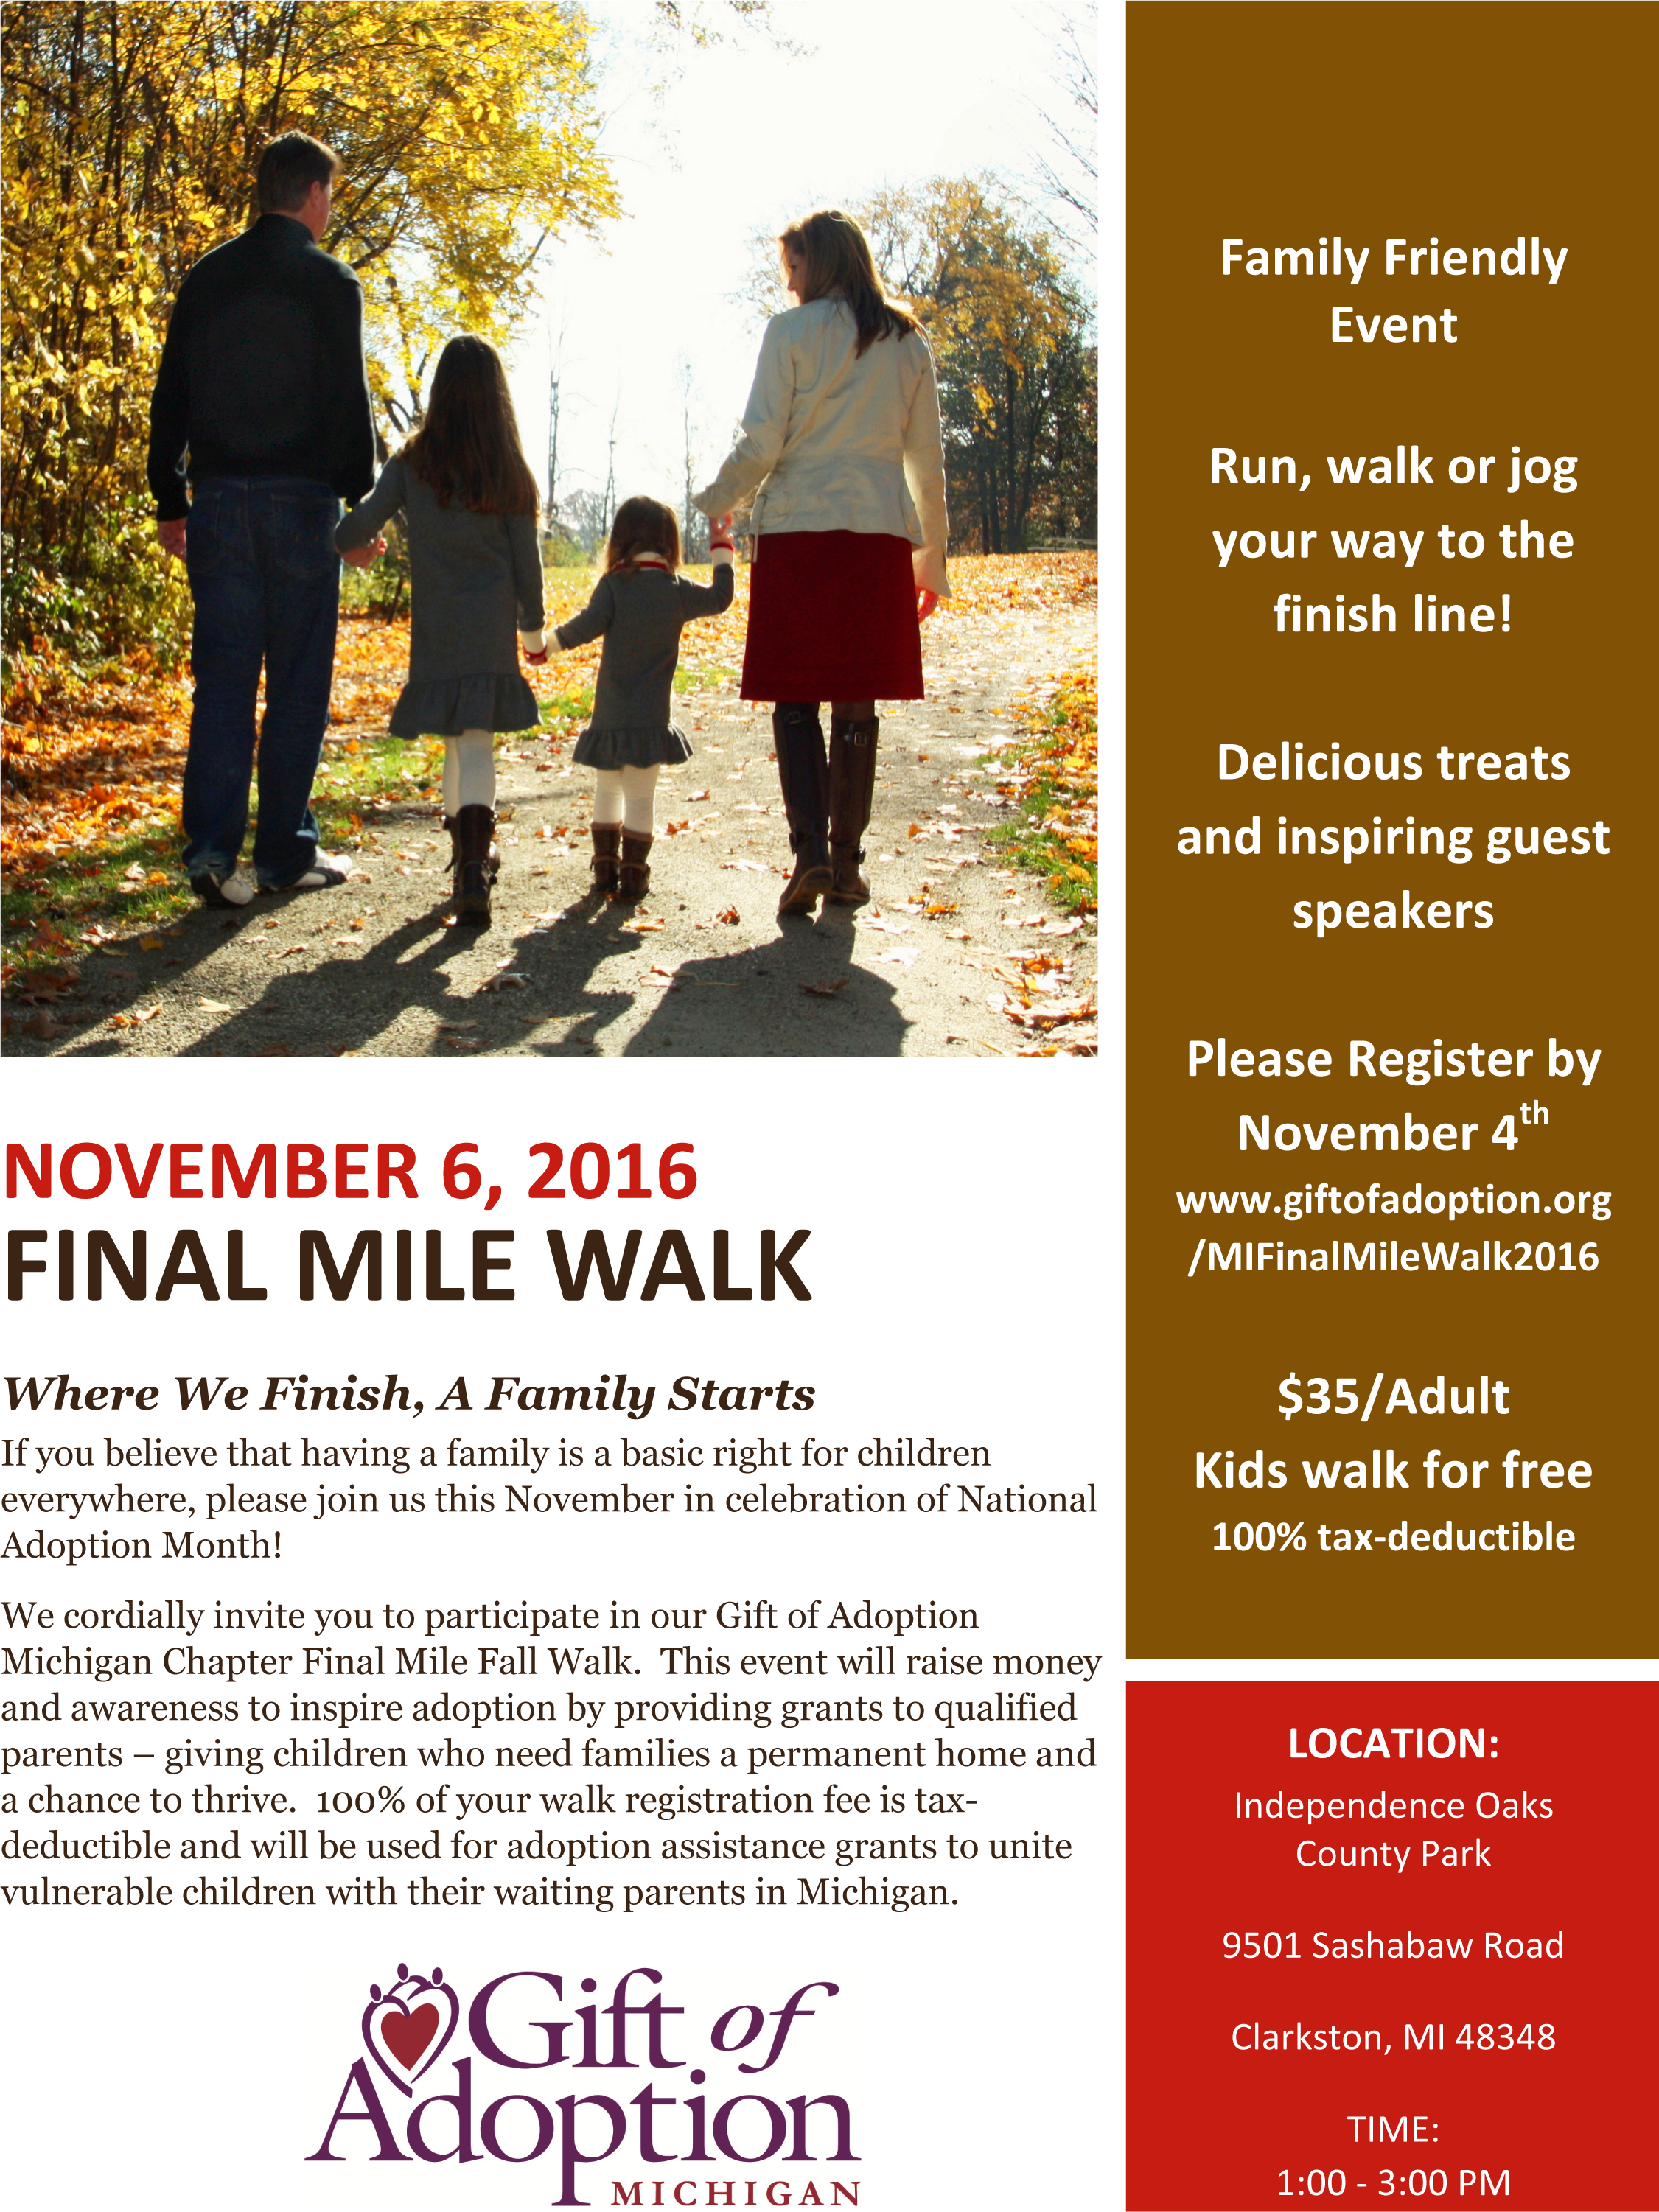 GOA MI Final Mile Walk 2016 Invitation - 080316